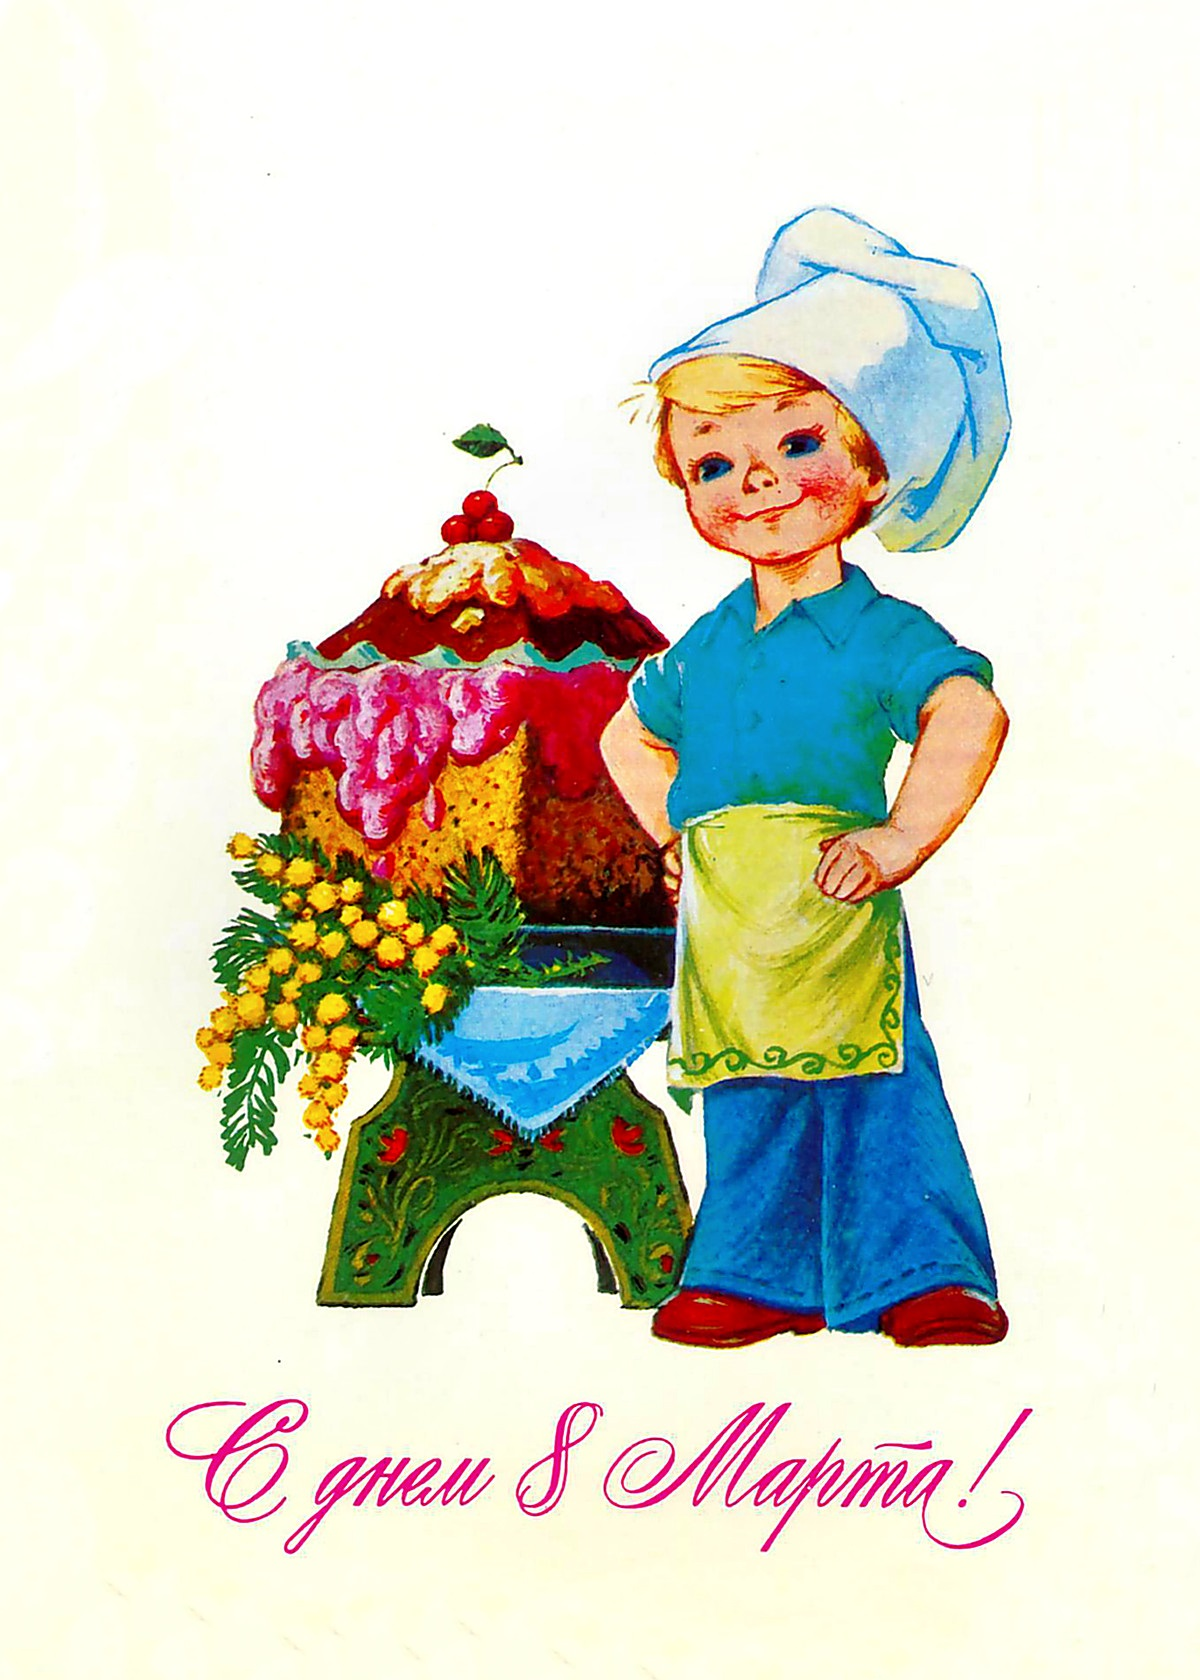 00 International Women's Day card 03. 1970s. 08.03.14